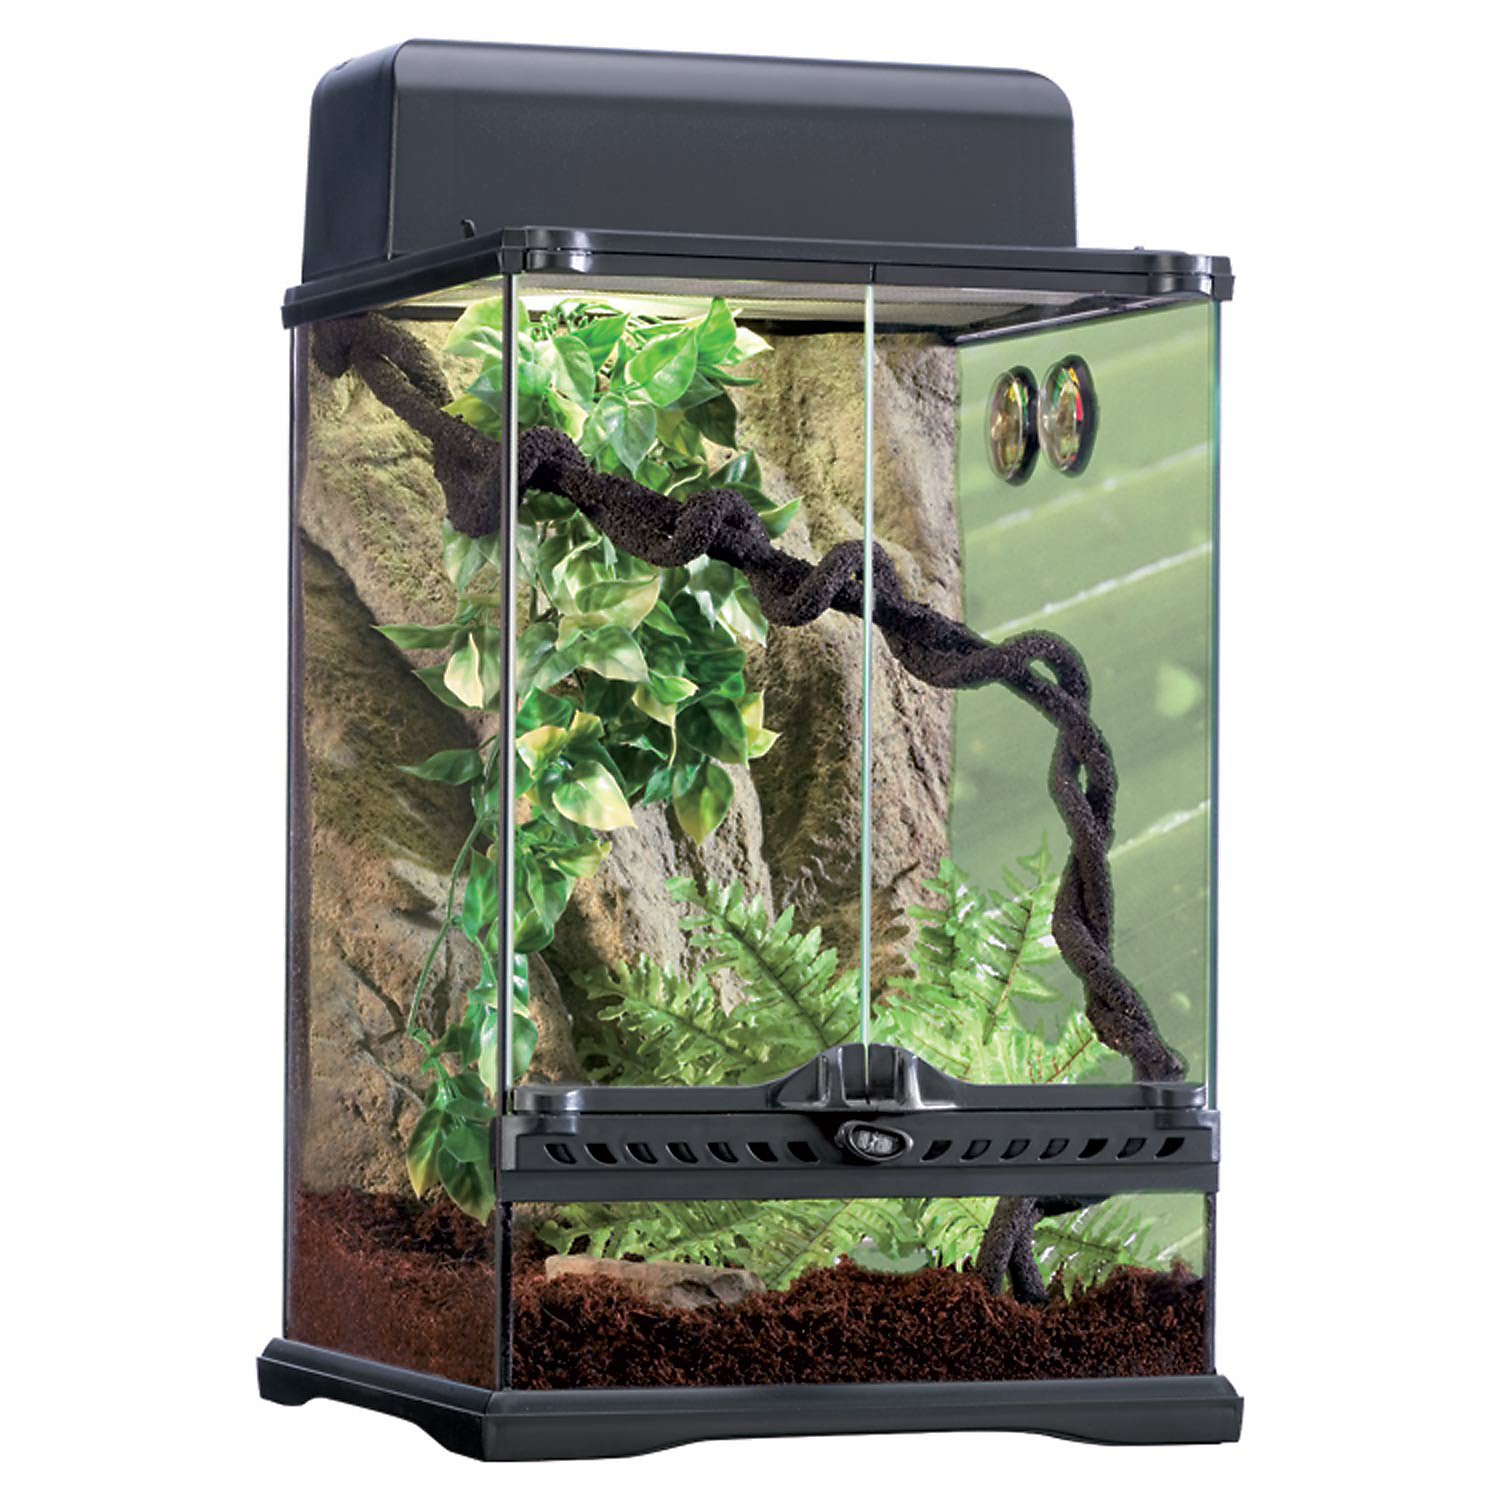 Exo Terra Rainforest Reptile Terrarium Kit Small